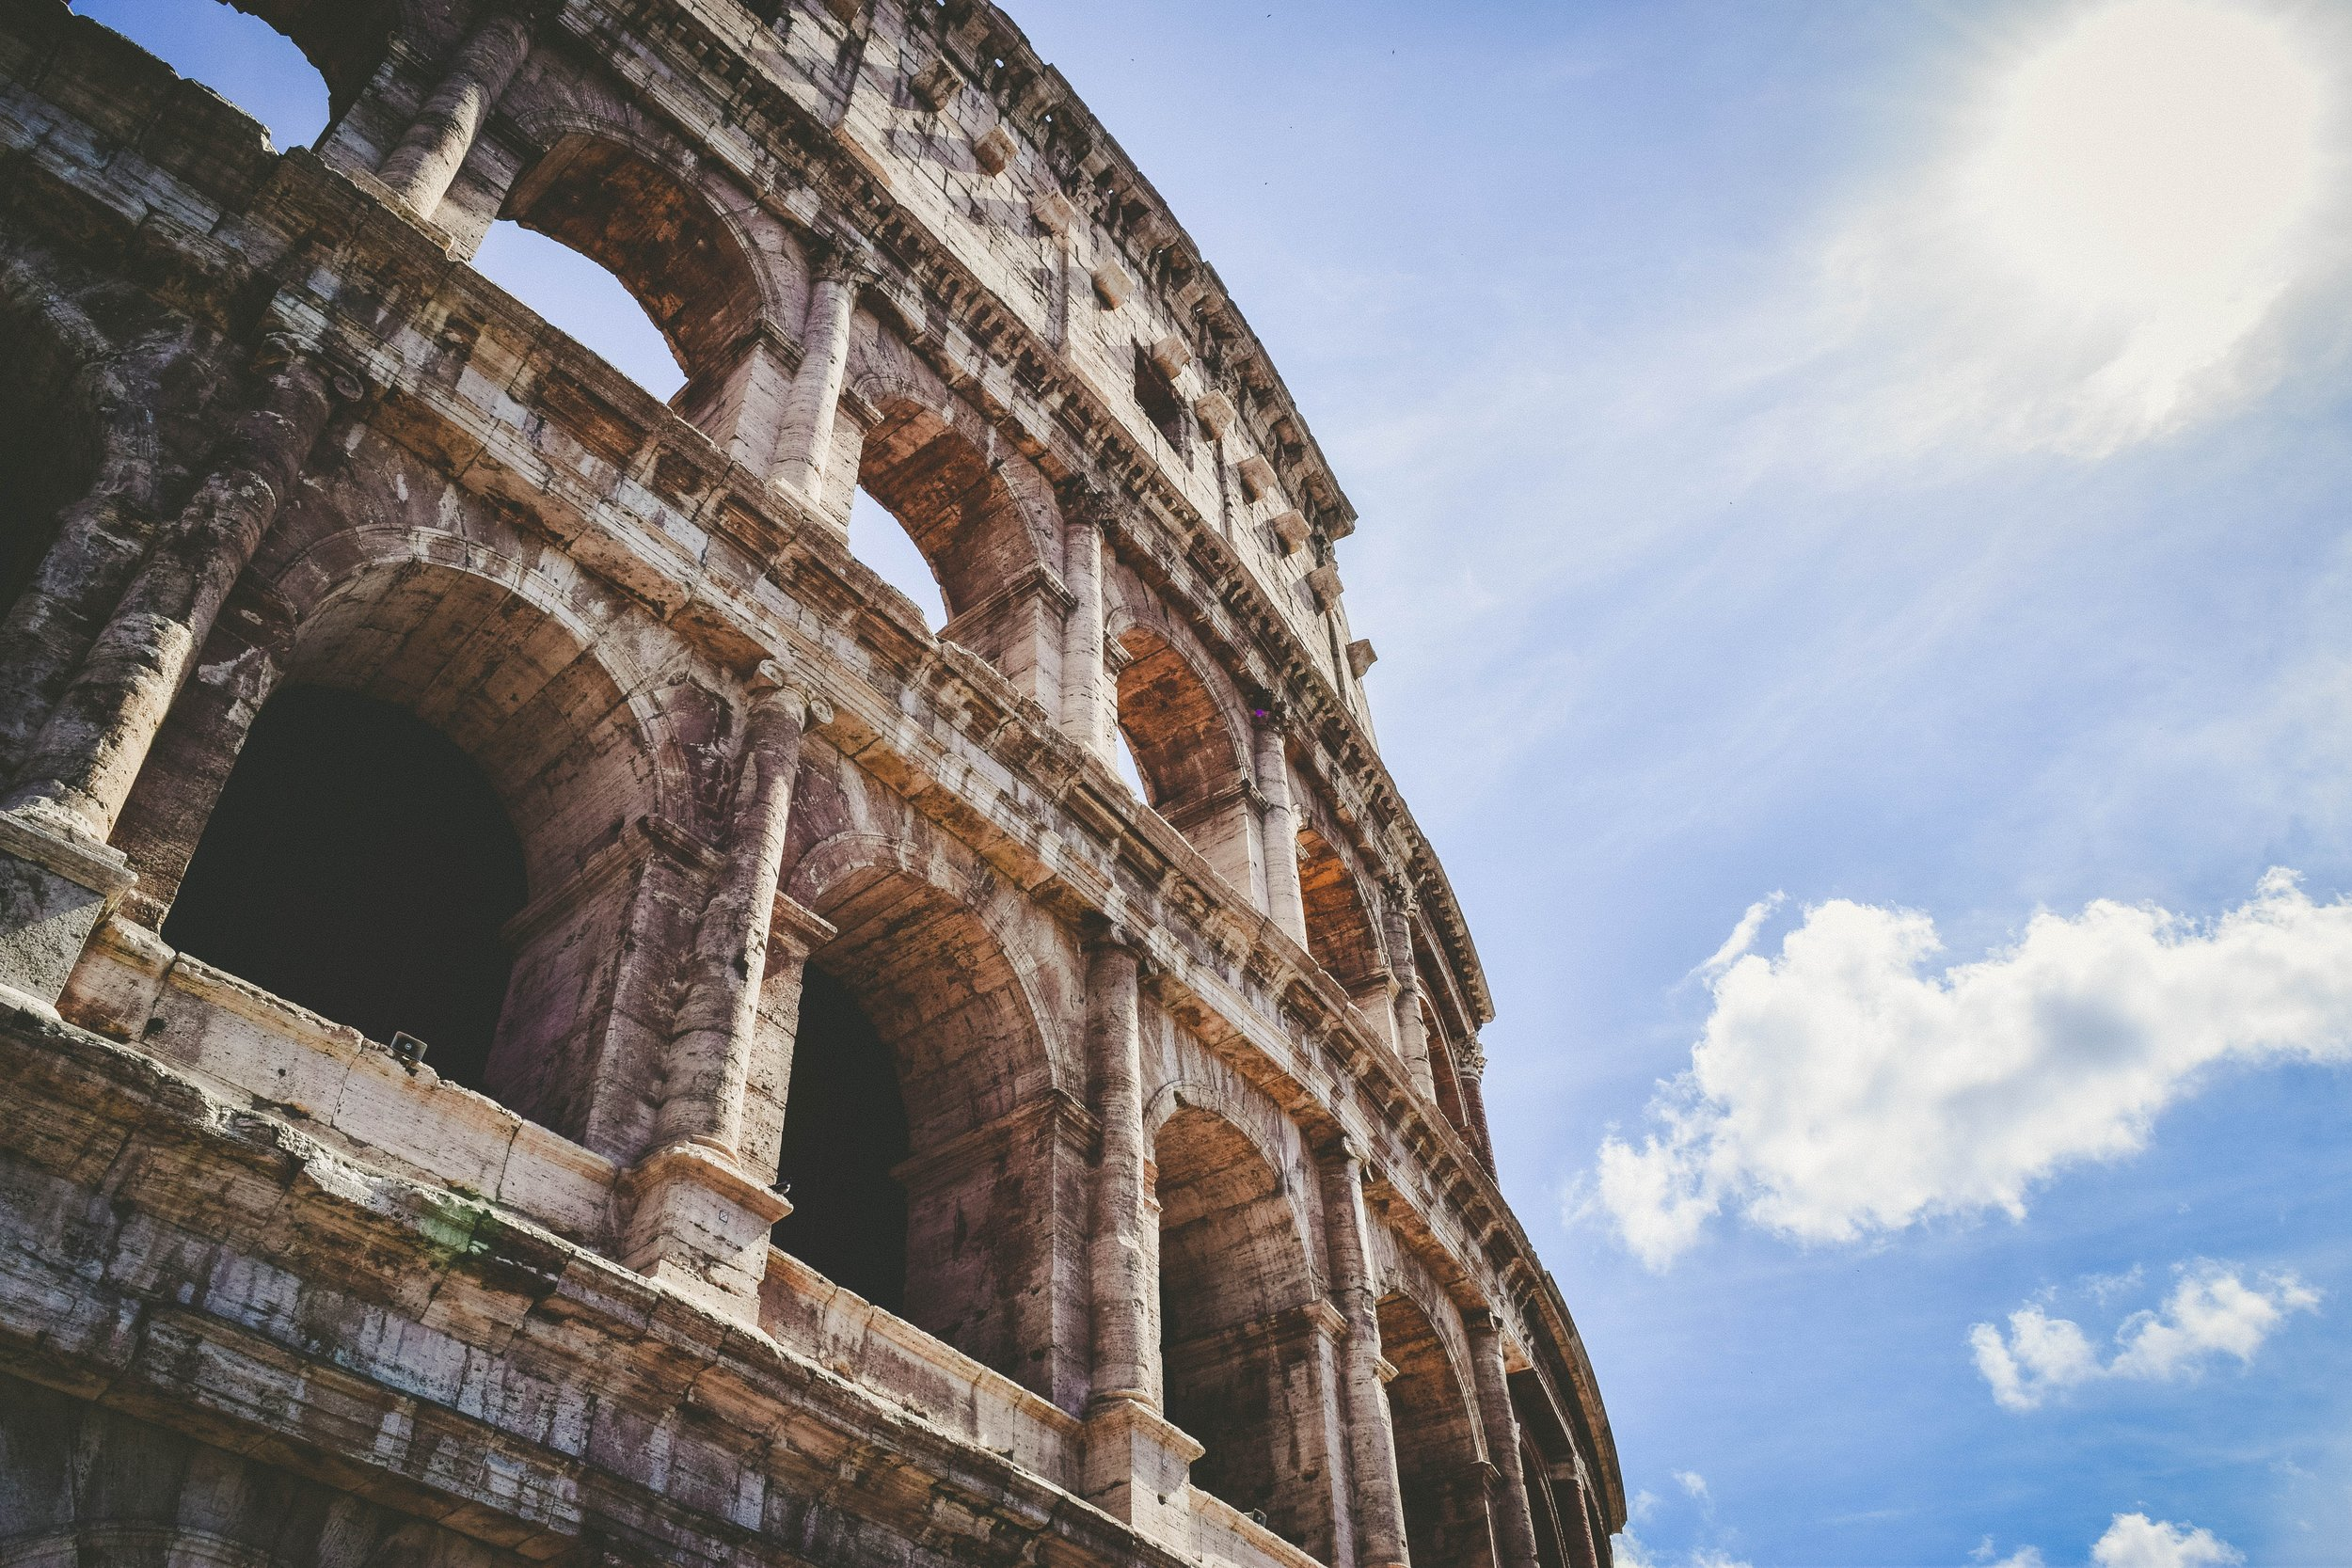 Cultural and Historical Sites - Coliseum, Roman Forum, and more!